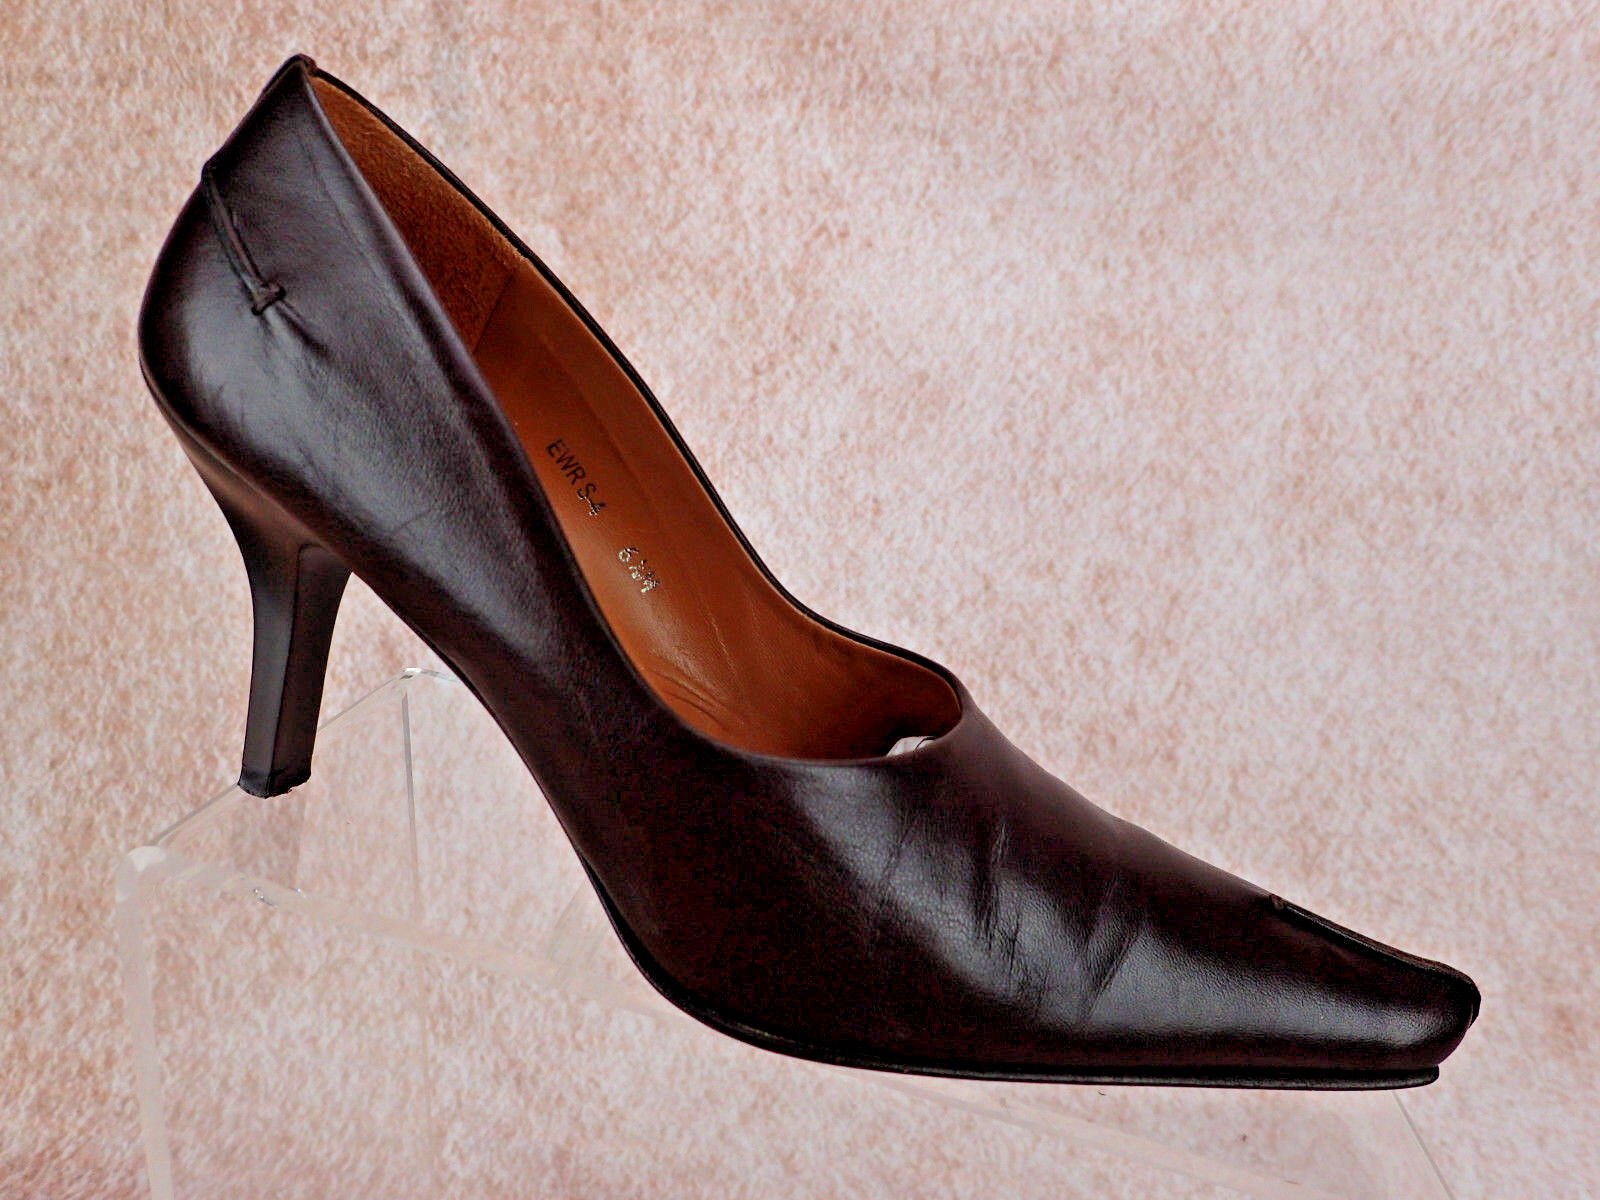 Donald J Pliner Heels Women's Size 6.5 M Brown Leather Pumps Pointed Toe